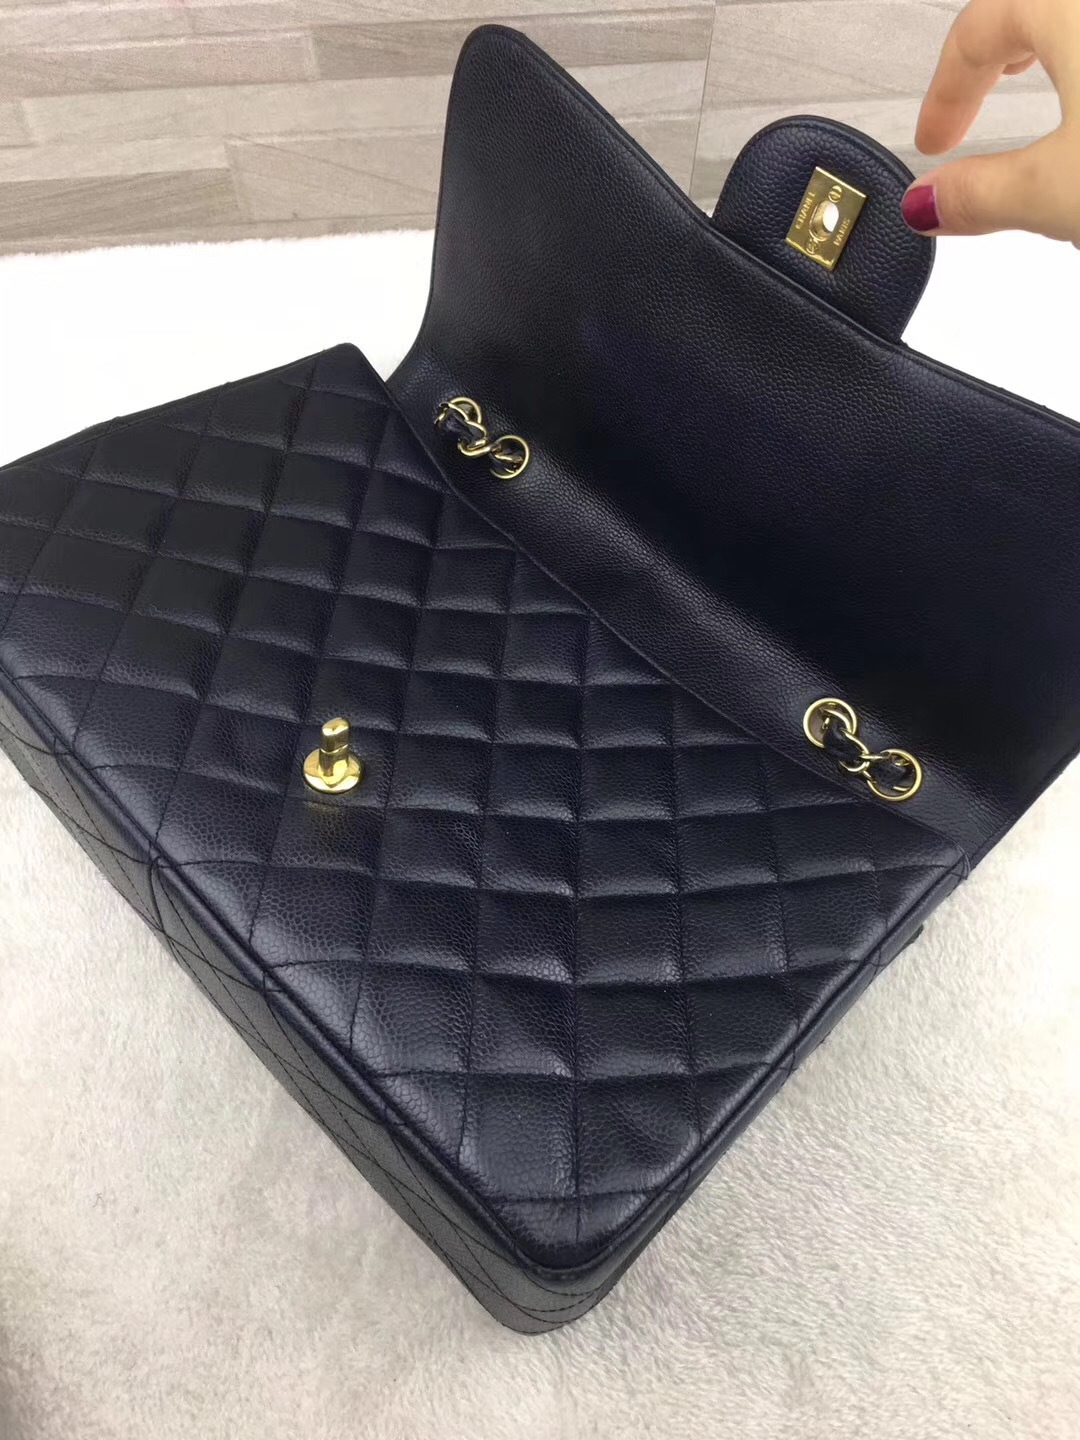 AUTHENTIC CHANEL BLACK QUILTED CAVIAR JUMBO CLASSIC FLAP BAG GOLDTONE HARDWARE